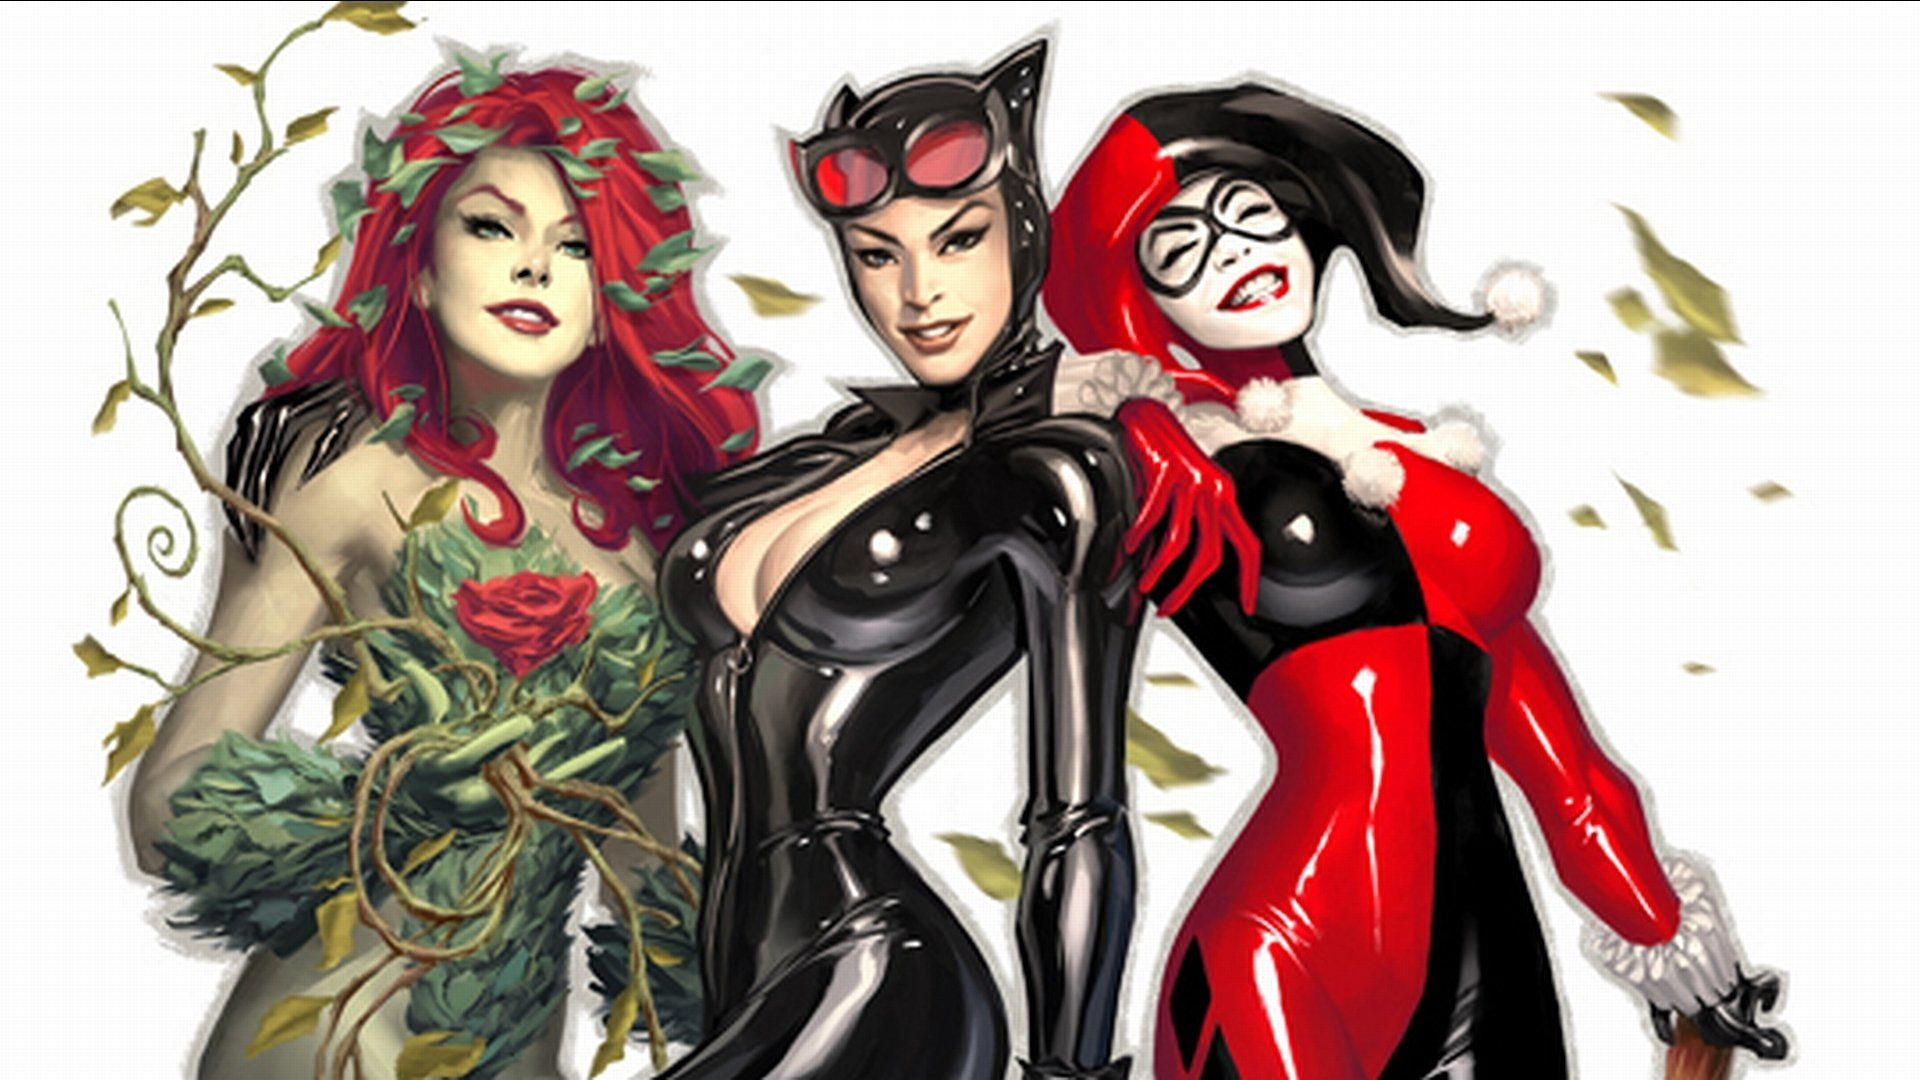 1920x1080 125 Poison Ivy HD Wallpapers | Background Images - Wallpaper ...